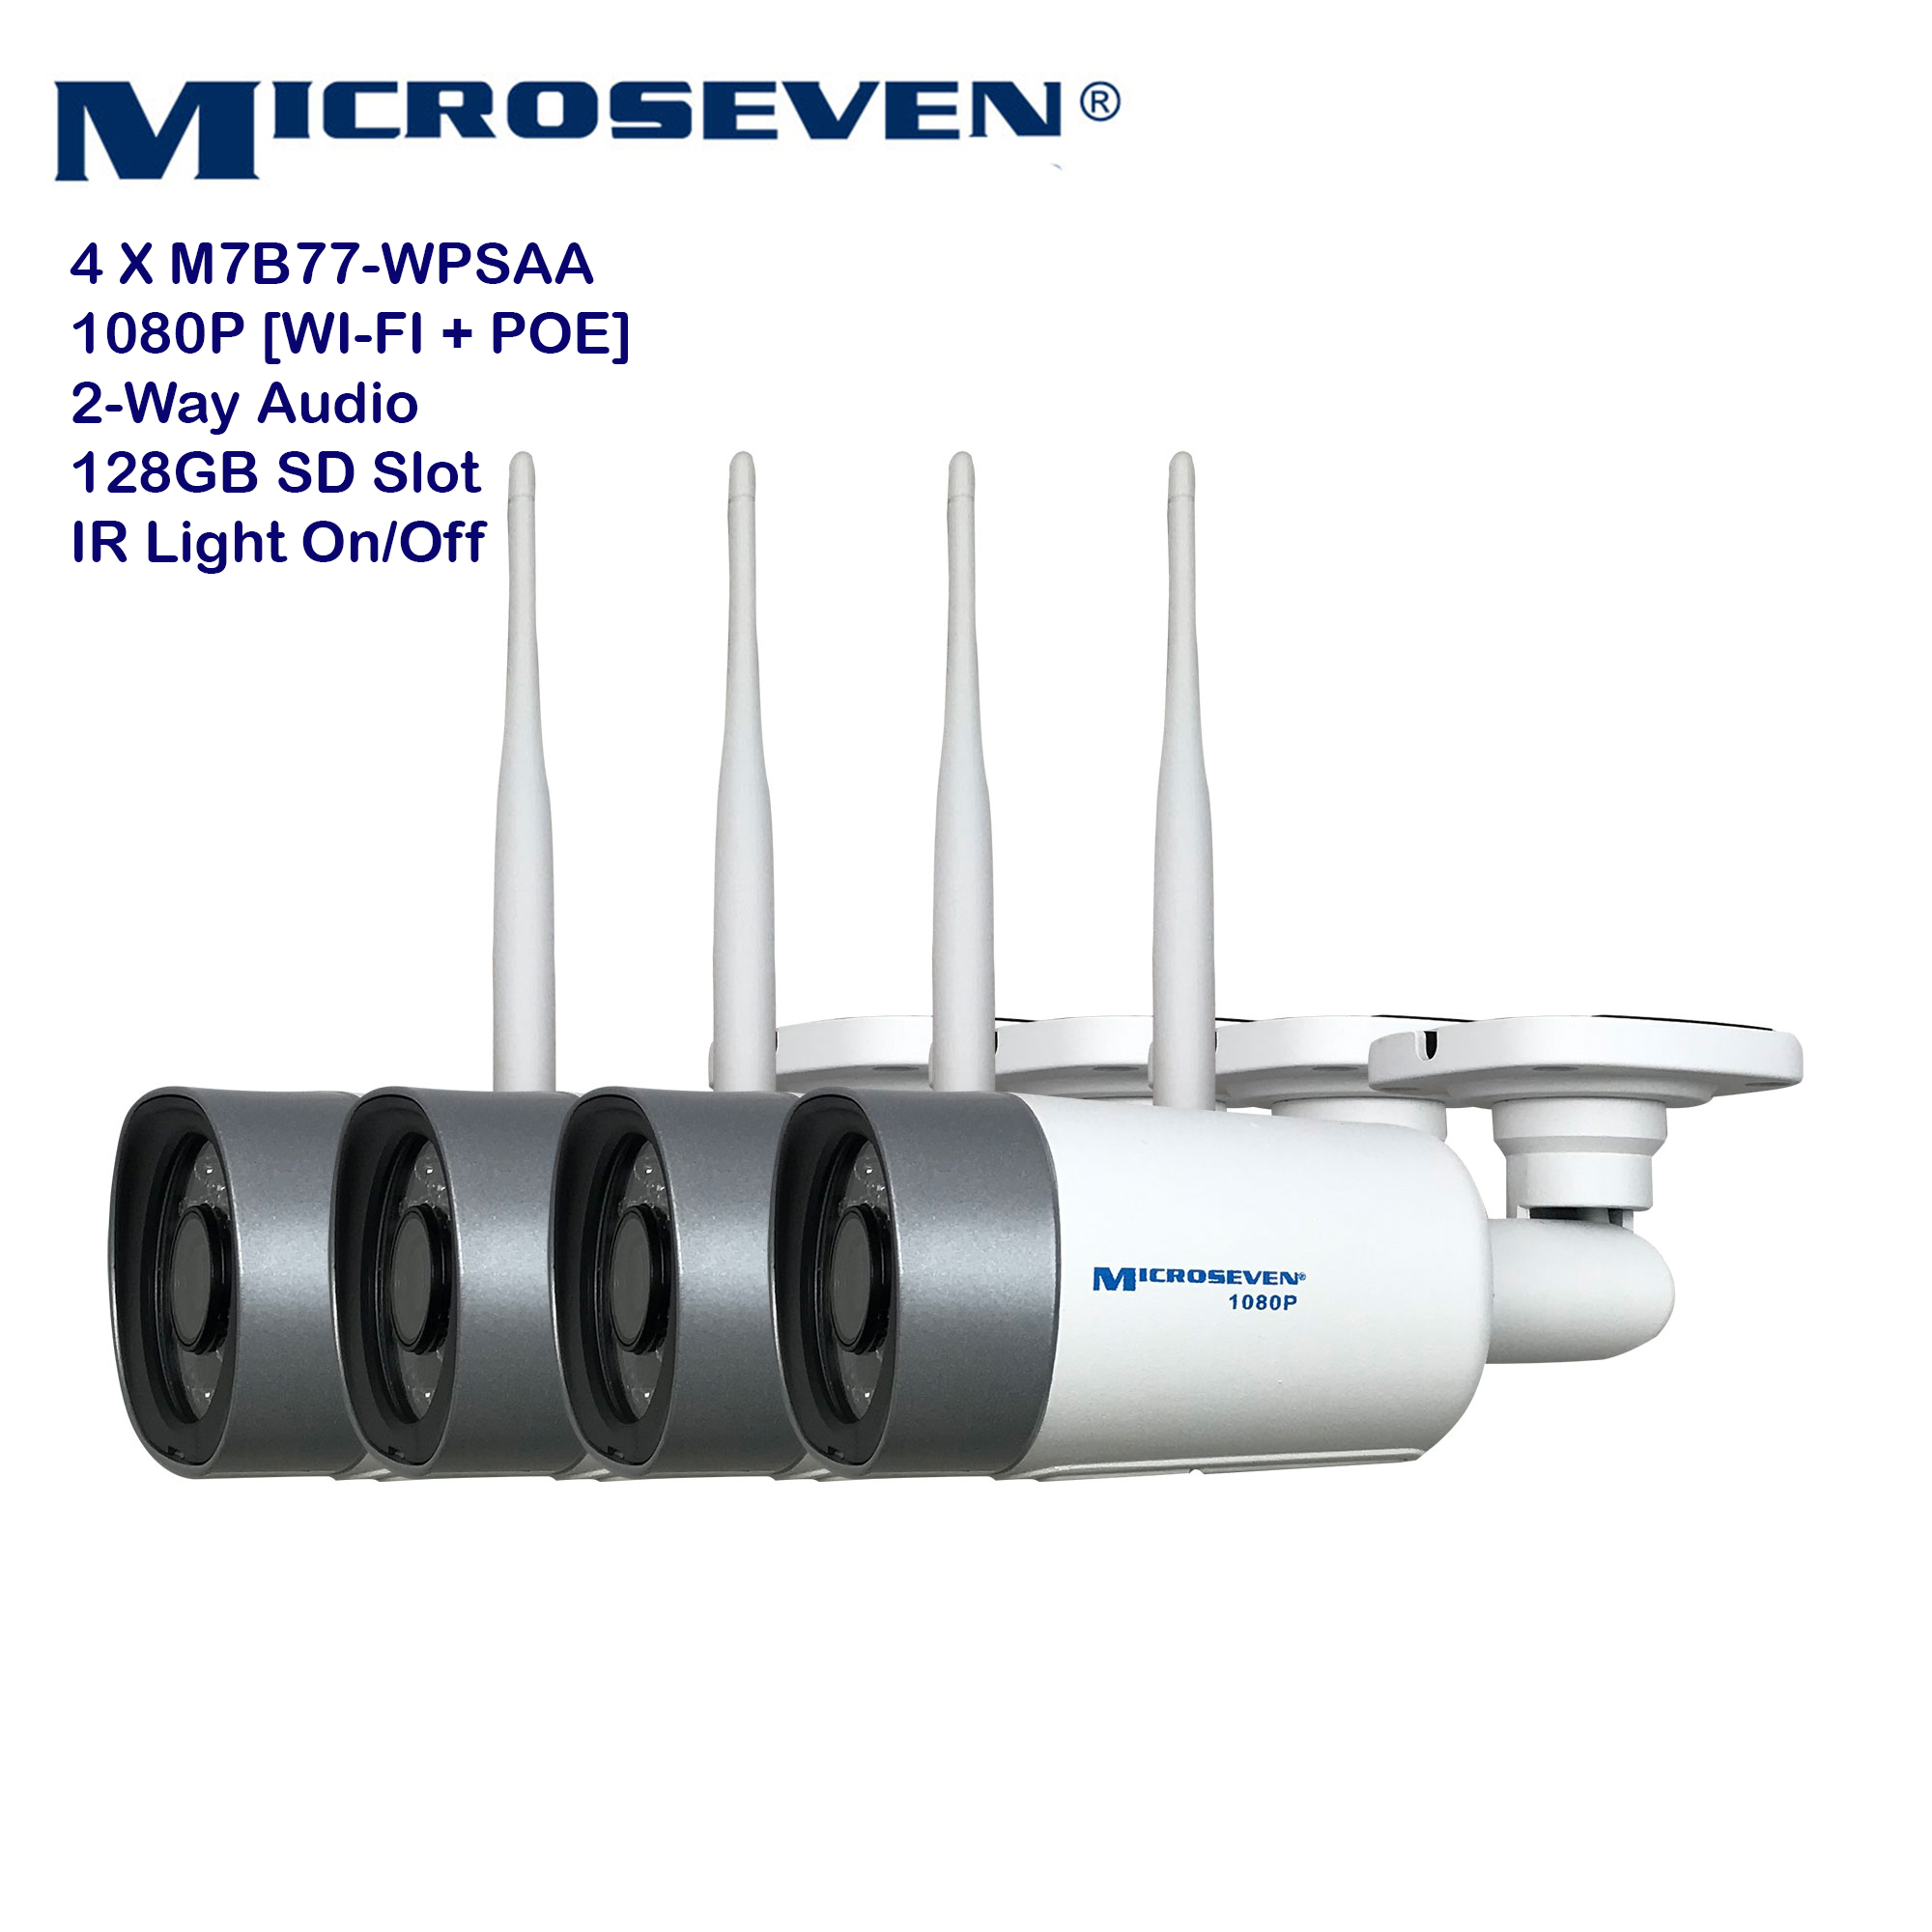 "4x Microseven (2019 Updated) M7B77-WPSAA Open Source All in One HD 1080P /30fps [WiFi+PoE] SONY 1/2.8"" Chipset CMOS 3.6mm 3MP Lens Two-Way Audio with Built-in Amplified Microphone and Speaker plug and Play ONVIF, IR Light (On/Off in the APP) Security Outdoor IP Camera 128GB SD Slot, Day & Night, Web GUI & Apps, VMS (Video Management System) Free 24hr M7 Cloud Storage, Works with Alexa"